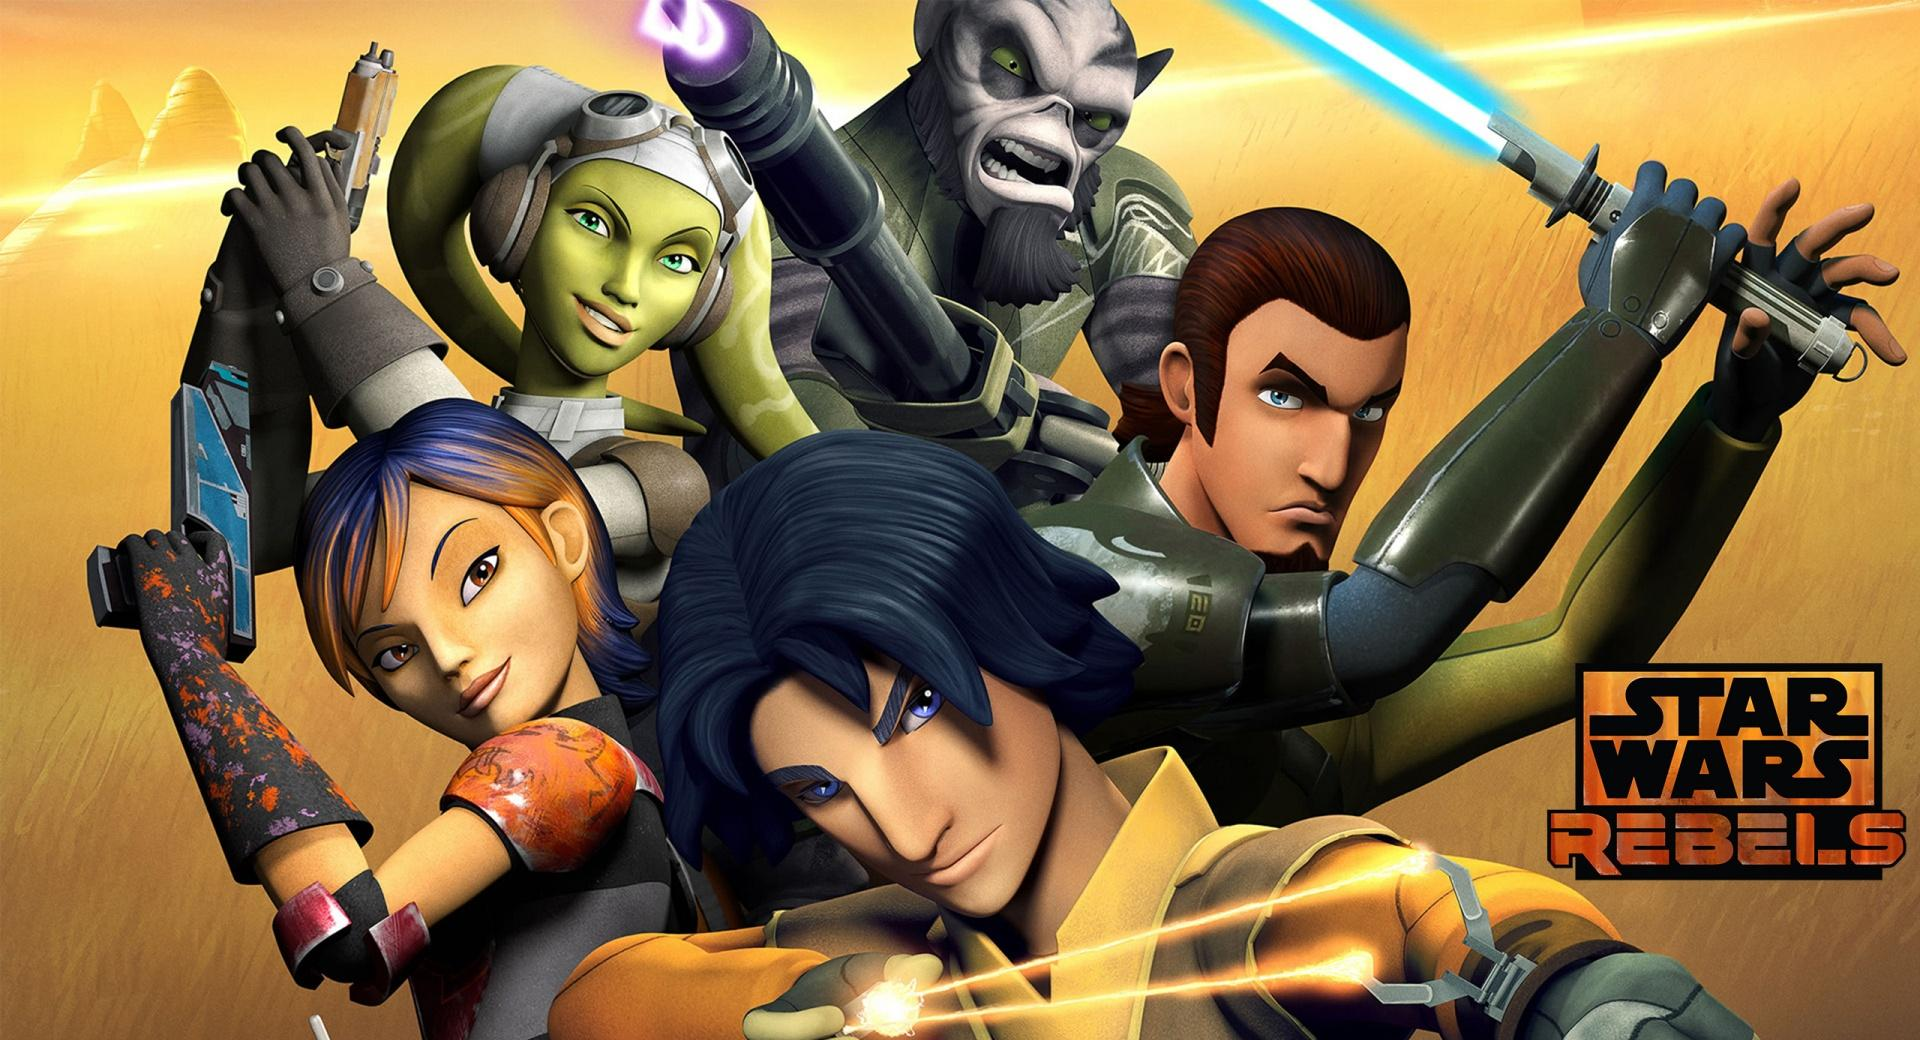 Star Wars Rebels Crew wallpapers HD quality